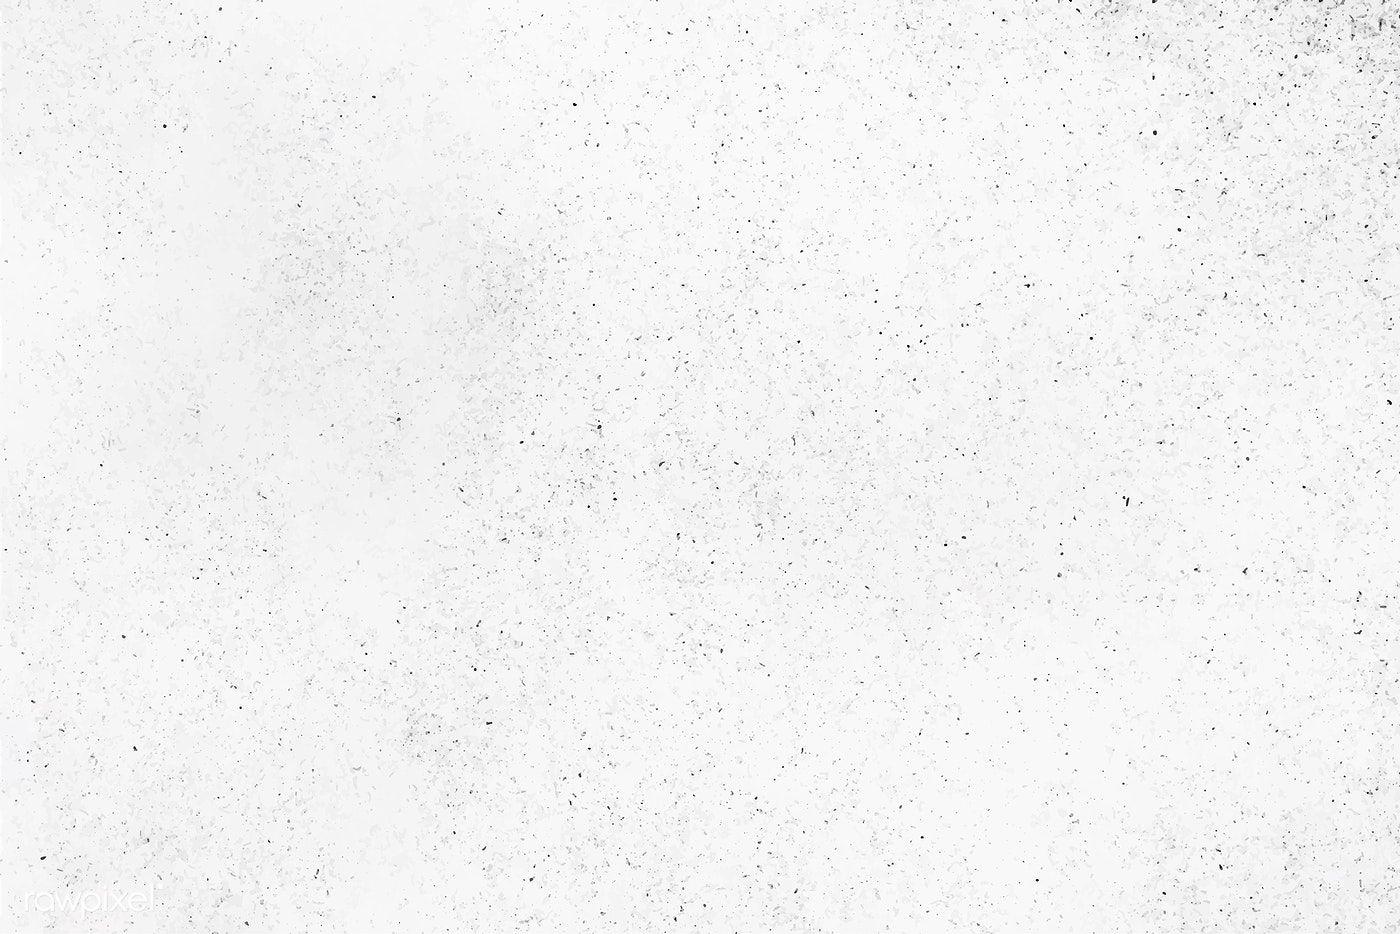 White Plain Concrete Textured Background Vector Free Image By Rawpixel Com Aom Woraluck Hw Concrete Texture Textured Background Vector Background Pattern